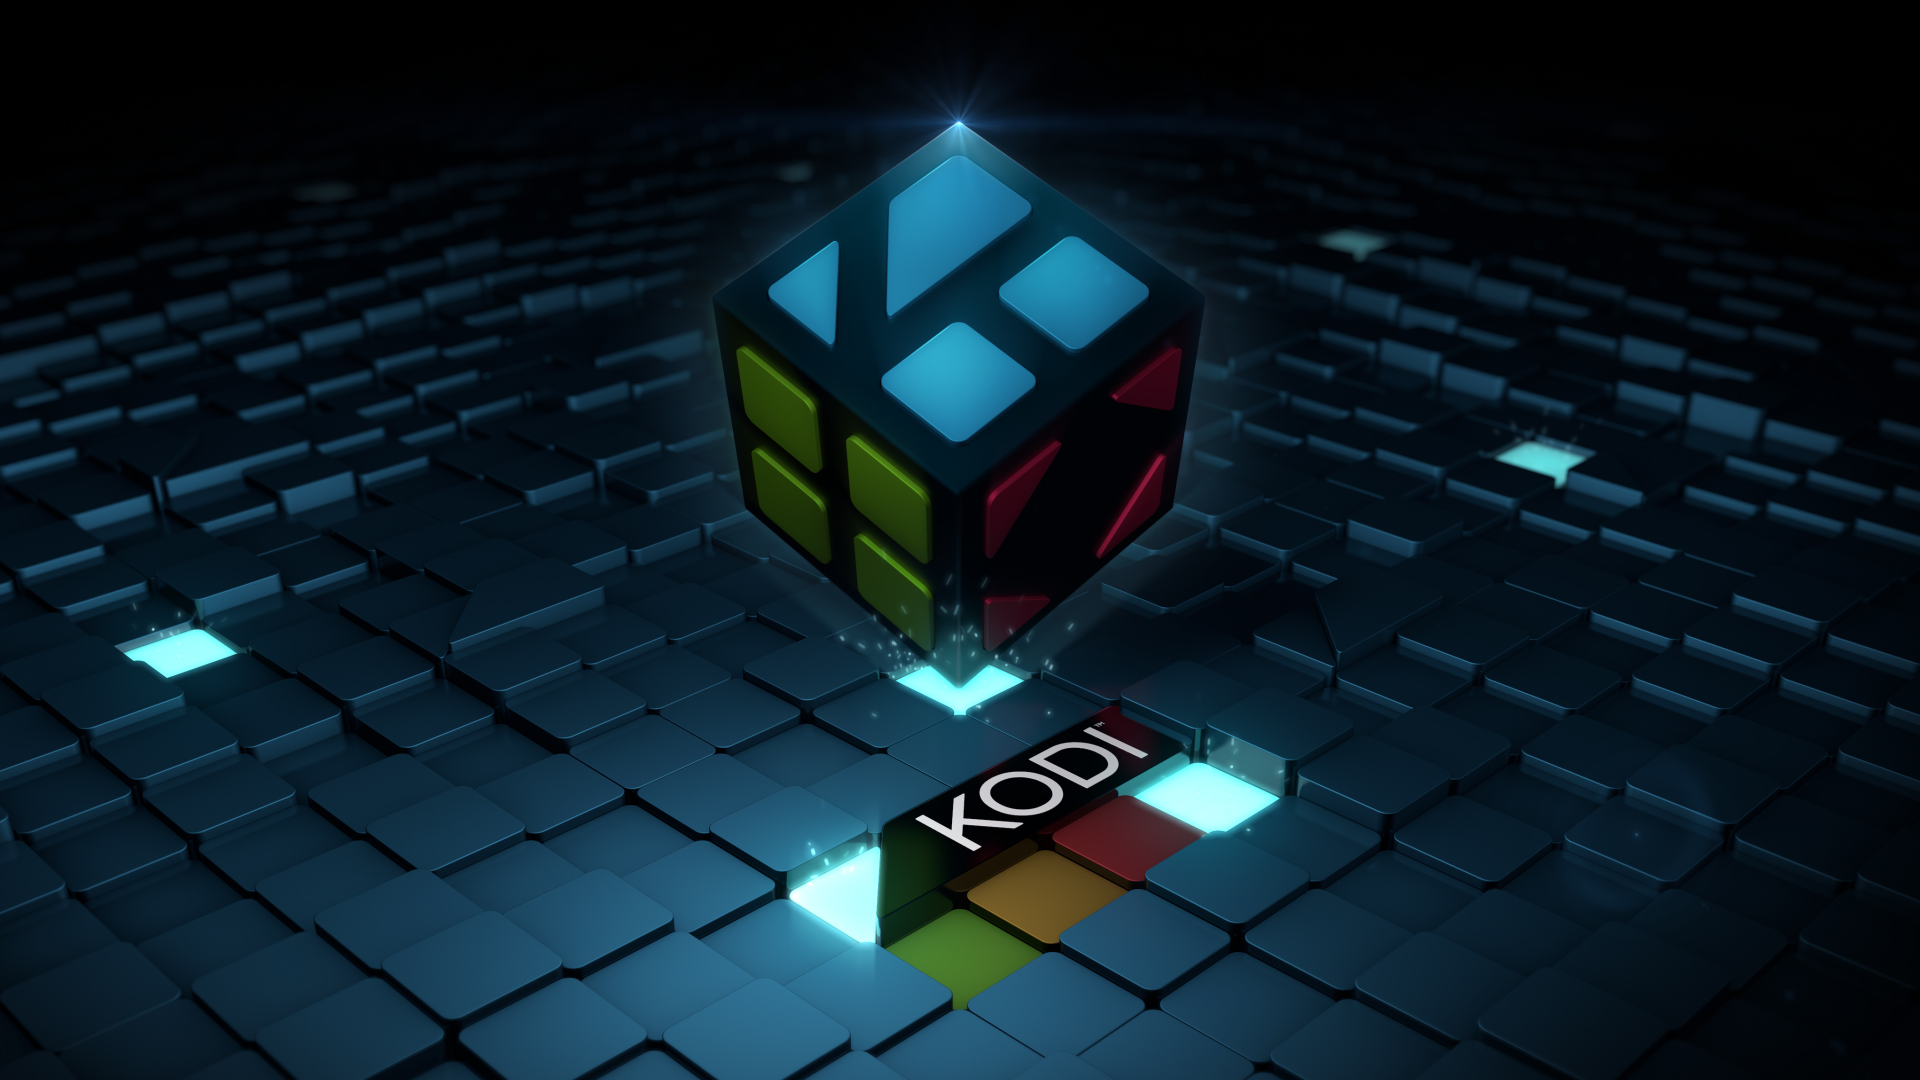 Live Wallpaper Hd 3d For Pc Community Art Official Kodi Wiki